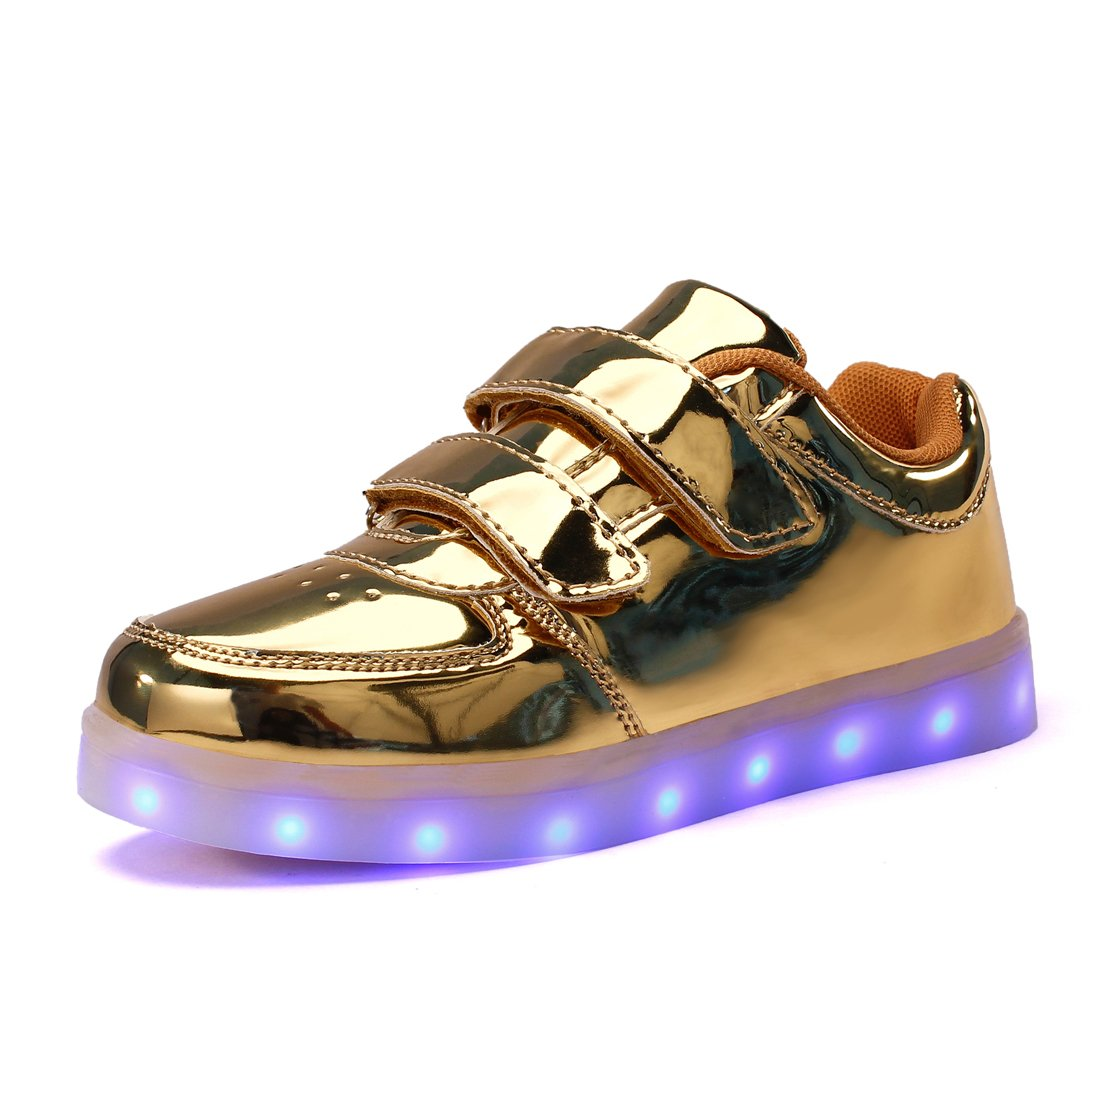 Kuuland Kids/Boys/Girls Light up Shoes LED Trainers Low-Top Flashing Sneakers